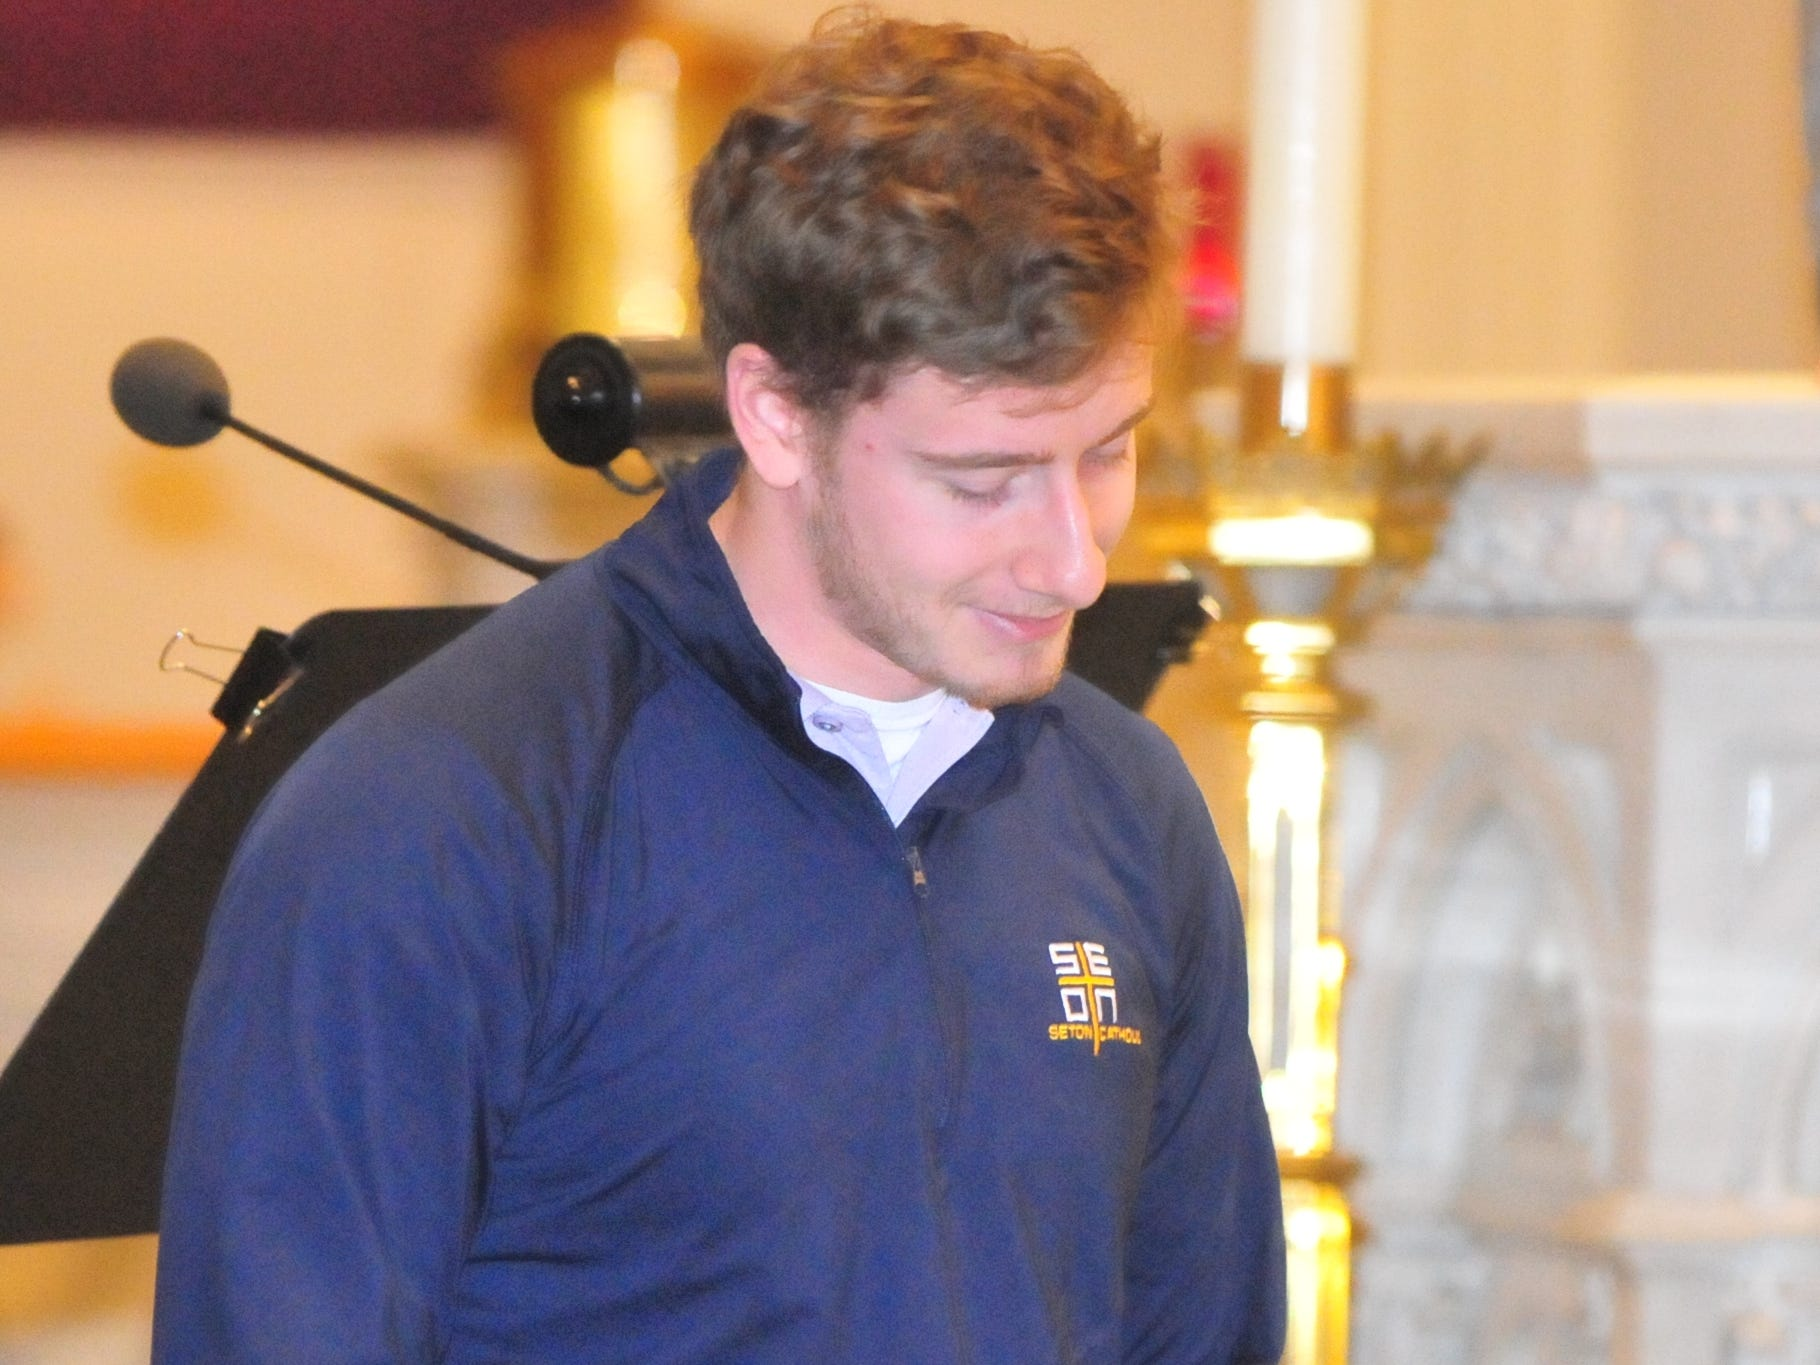 Seton Catholic senior Joseph Lahmann after finding out he won the Lilly Endowment Community Scholarship after morning mass at St. Andrew's Catholic Church in Richmond Tuesday, Dec. 11, 2018.